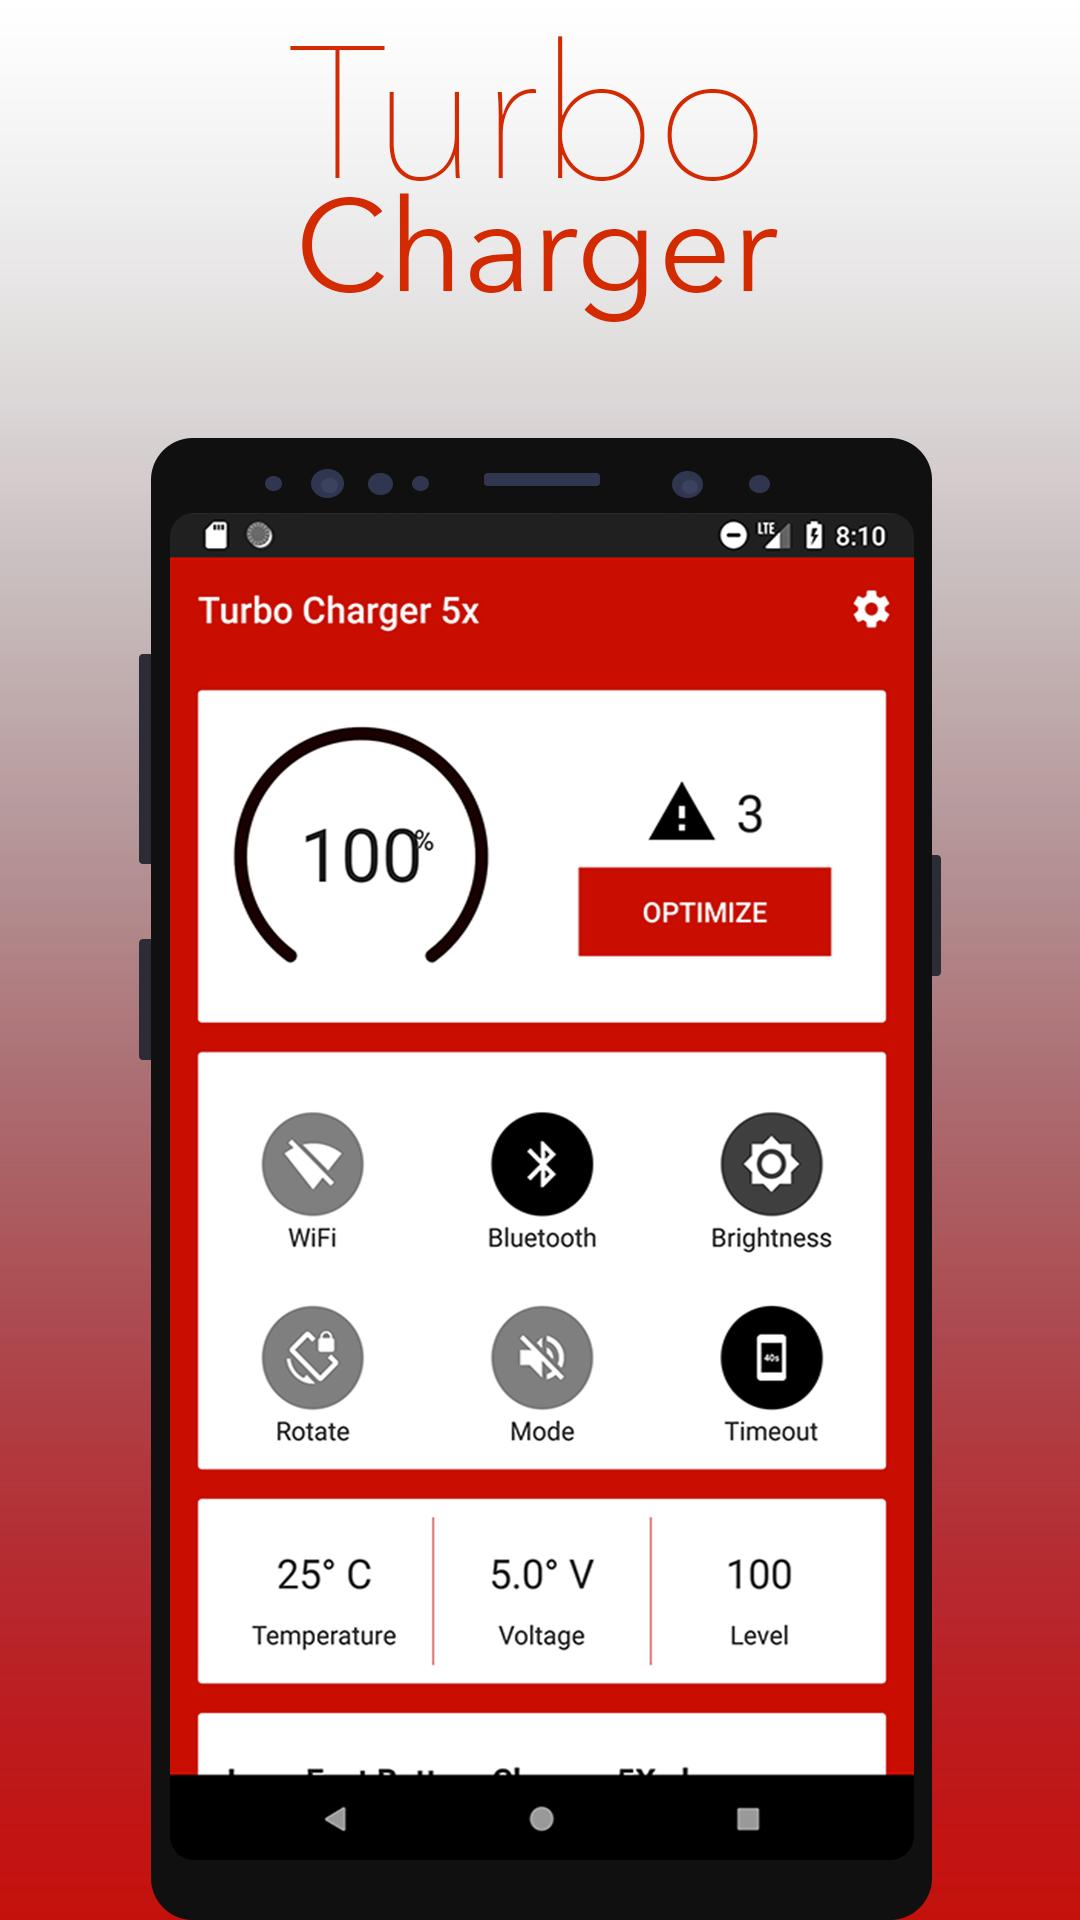 Turbo Charger X5 : Fast Charge for Android - APK Download